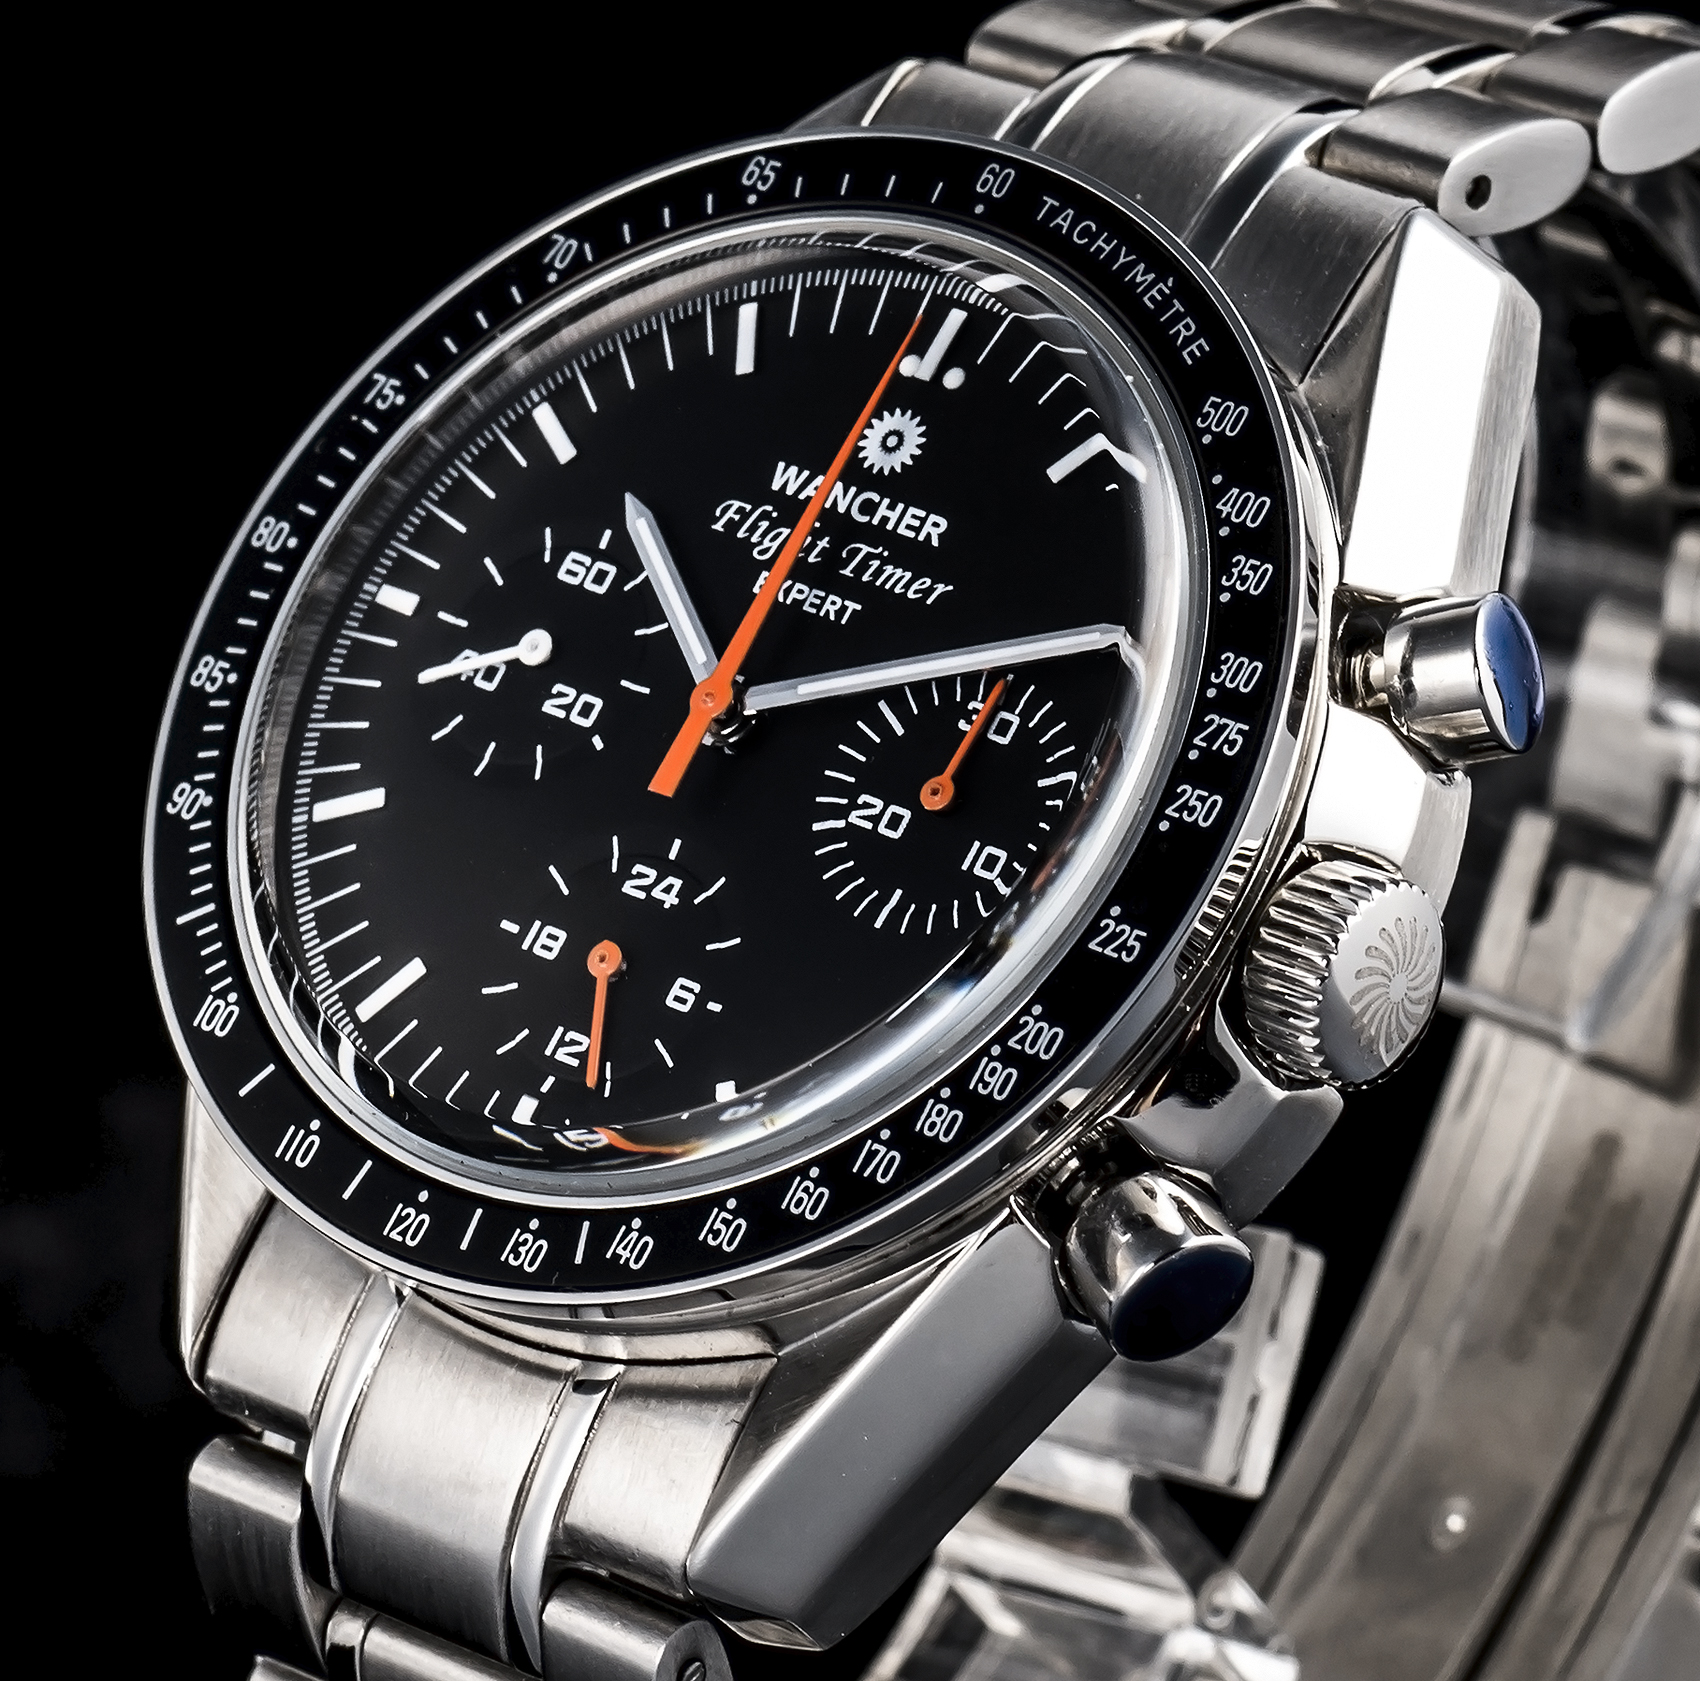 TACHYMETER - A tachymeter is a useful scale for computing speed based on travel time over a fixed distance travelled, which can be found on a watch's bezel or running around the outside of the dial. Or in other words, it is simply a means of converting elapsed time (in seconds per unit) to speed (in units per hour).